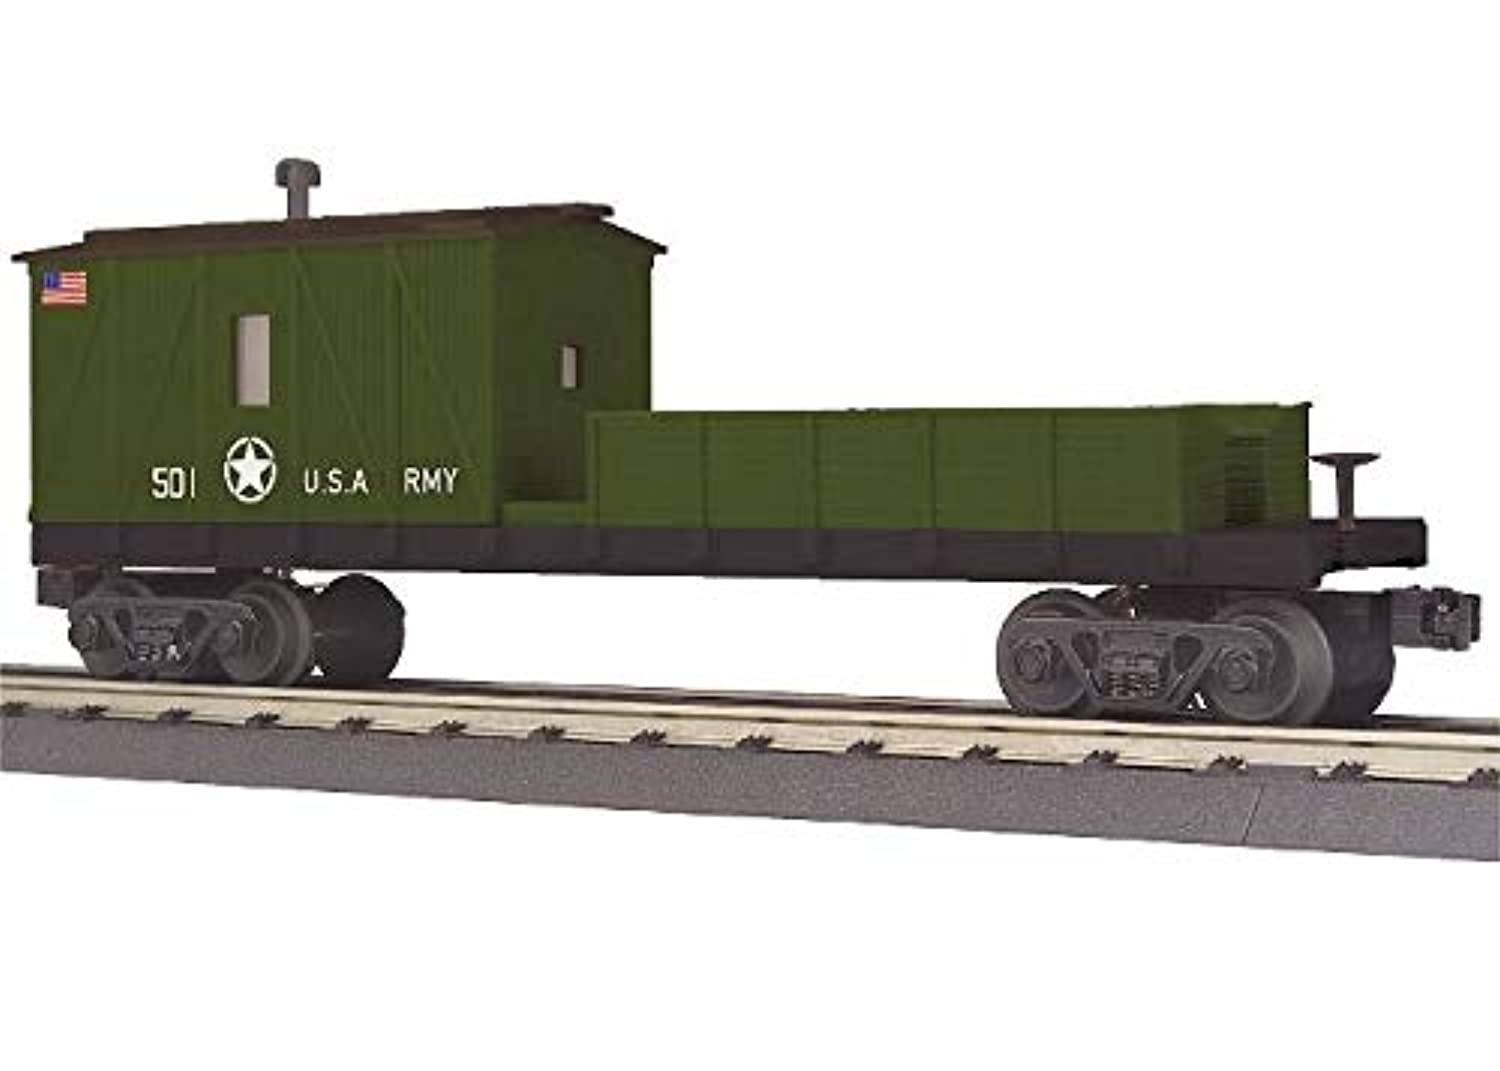 MTH TRAINS; MIKES TRAIN HOUSE U.S. Army Crane Tender CAR